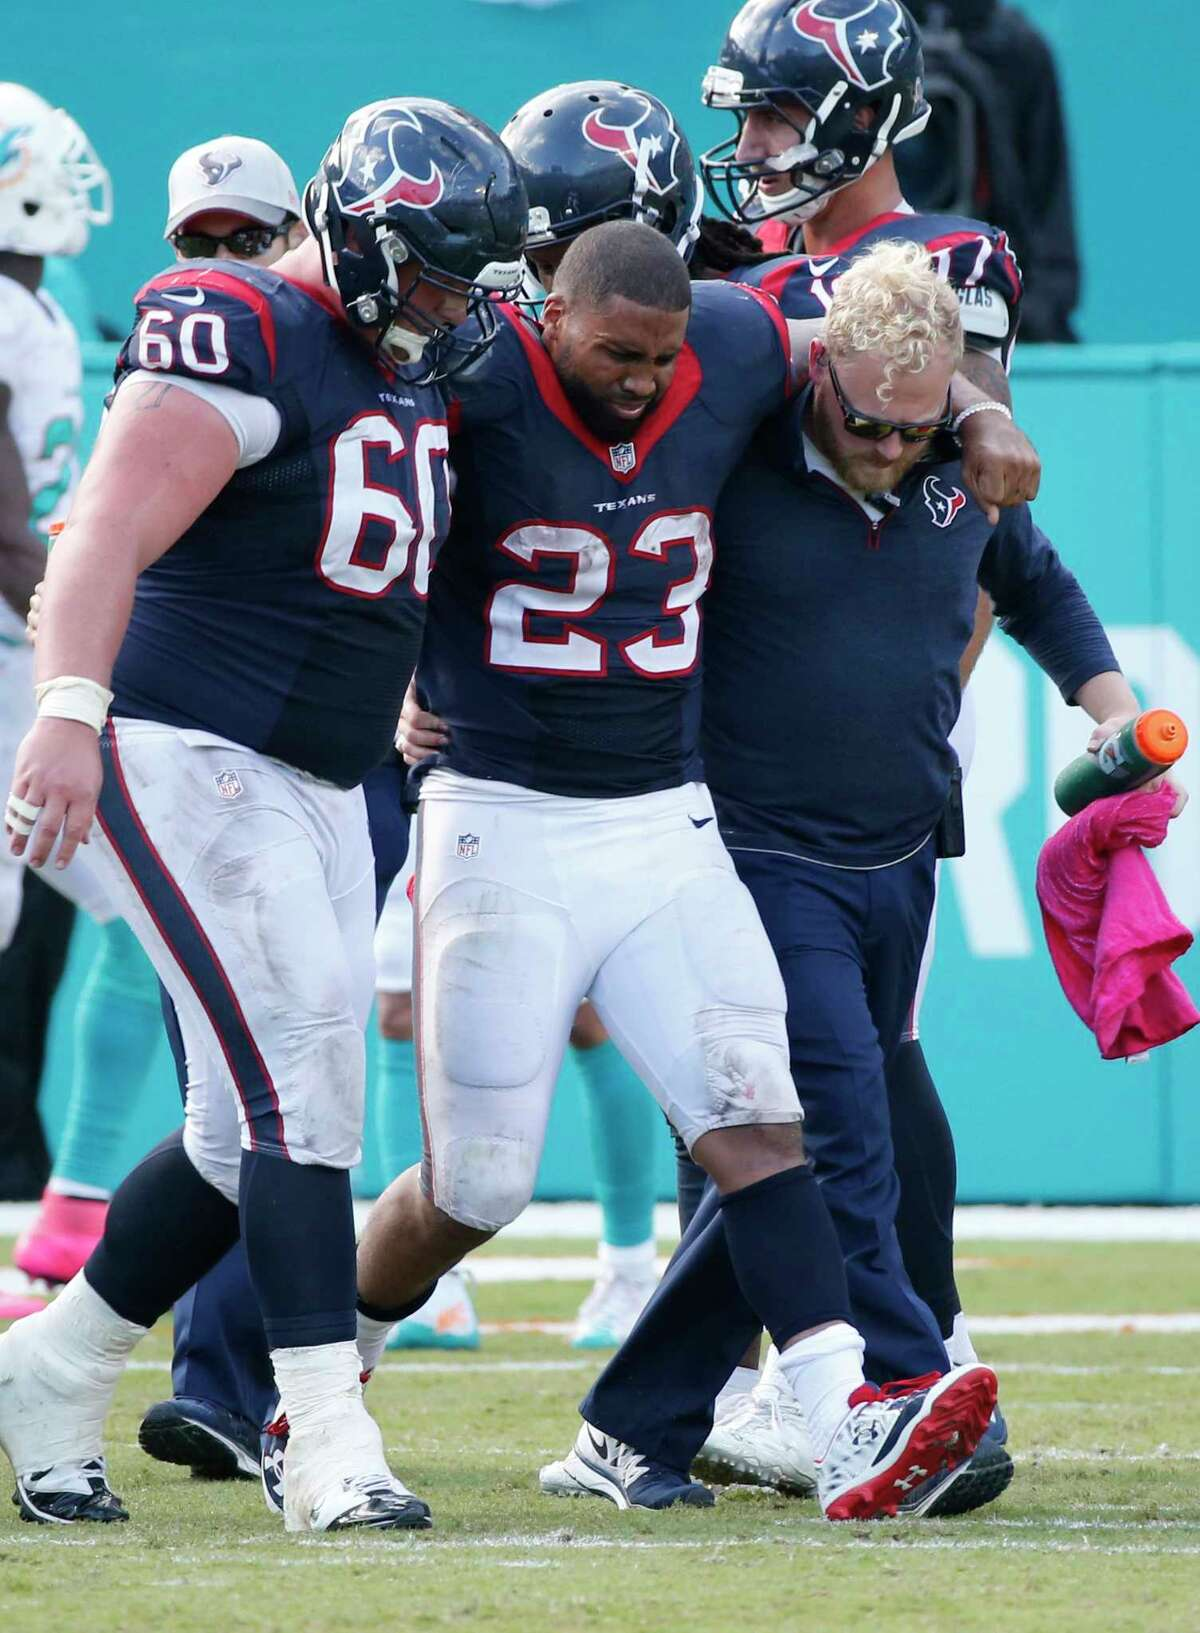 Houston Texans running back Arian Foster (23) is out for the season.